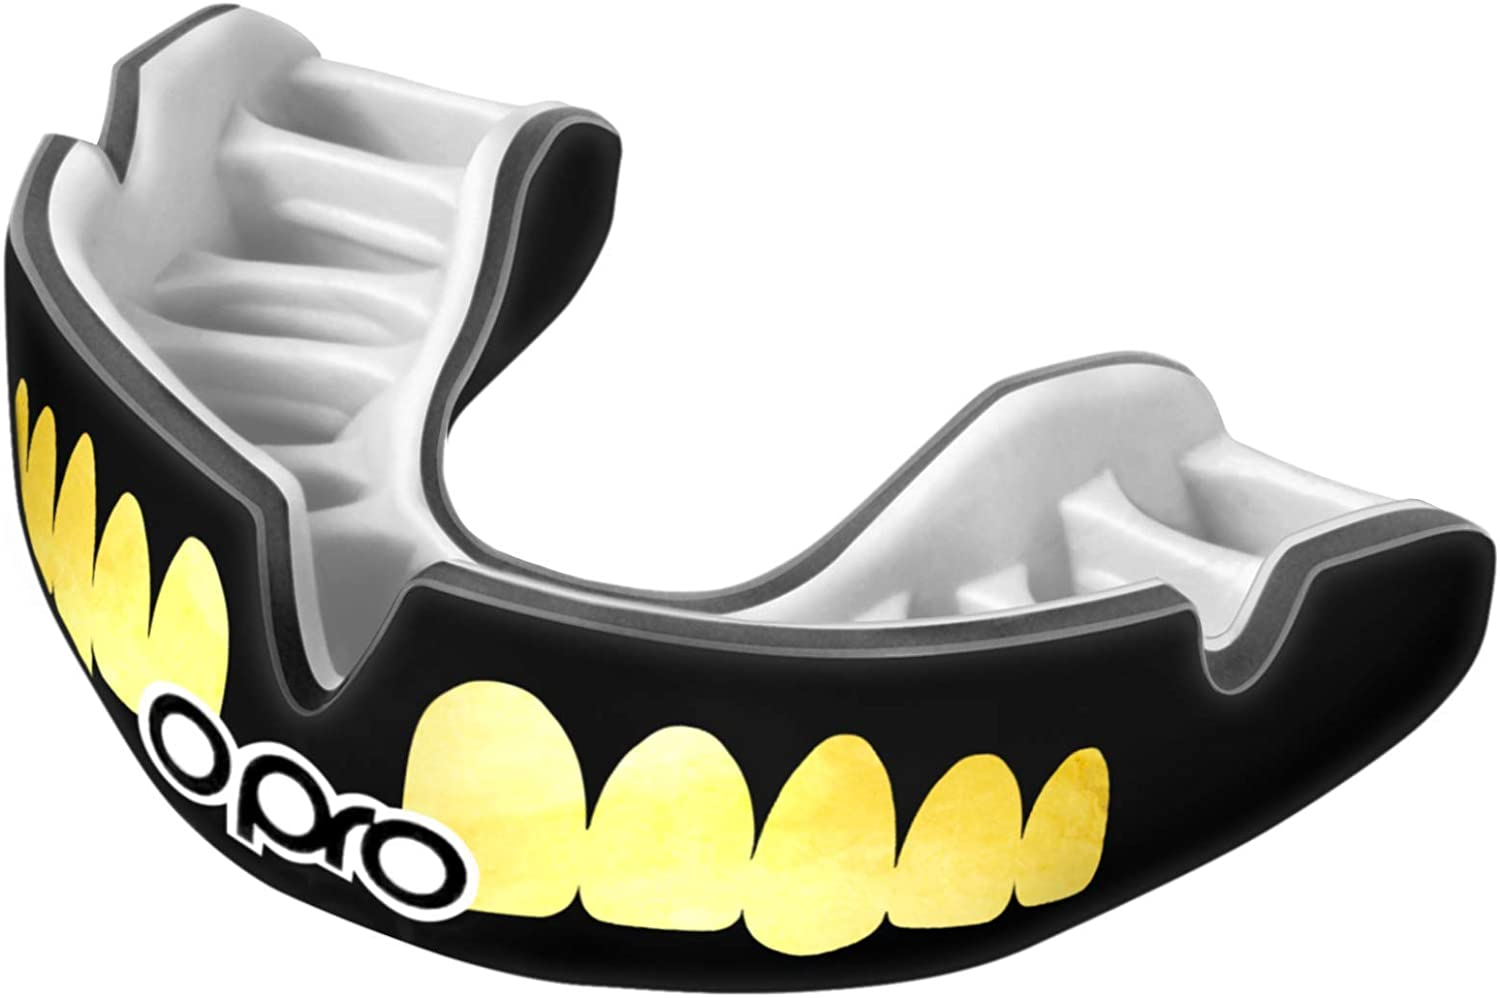 OPRO Power-Fit Mouthguard (Adult and Youth Sizes)